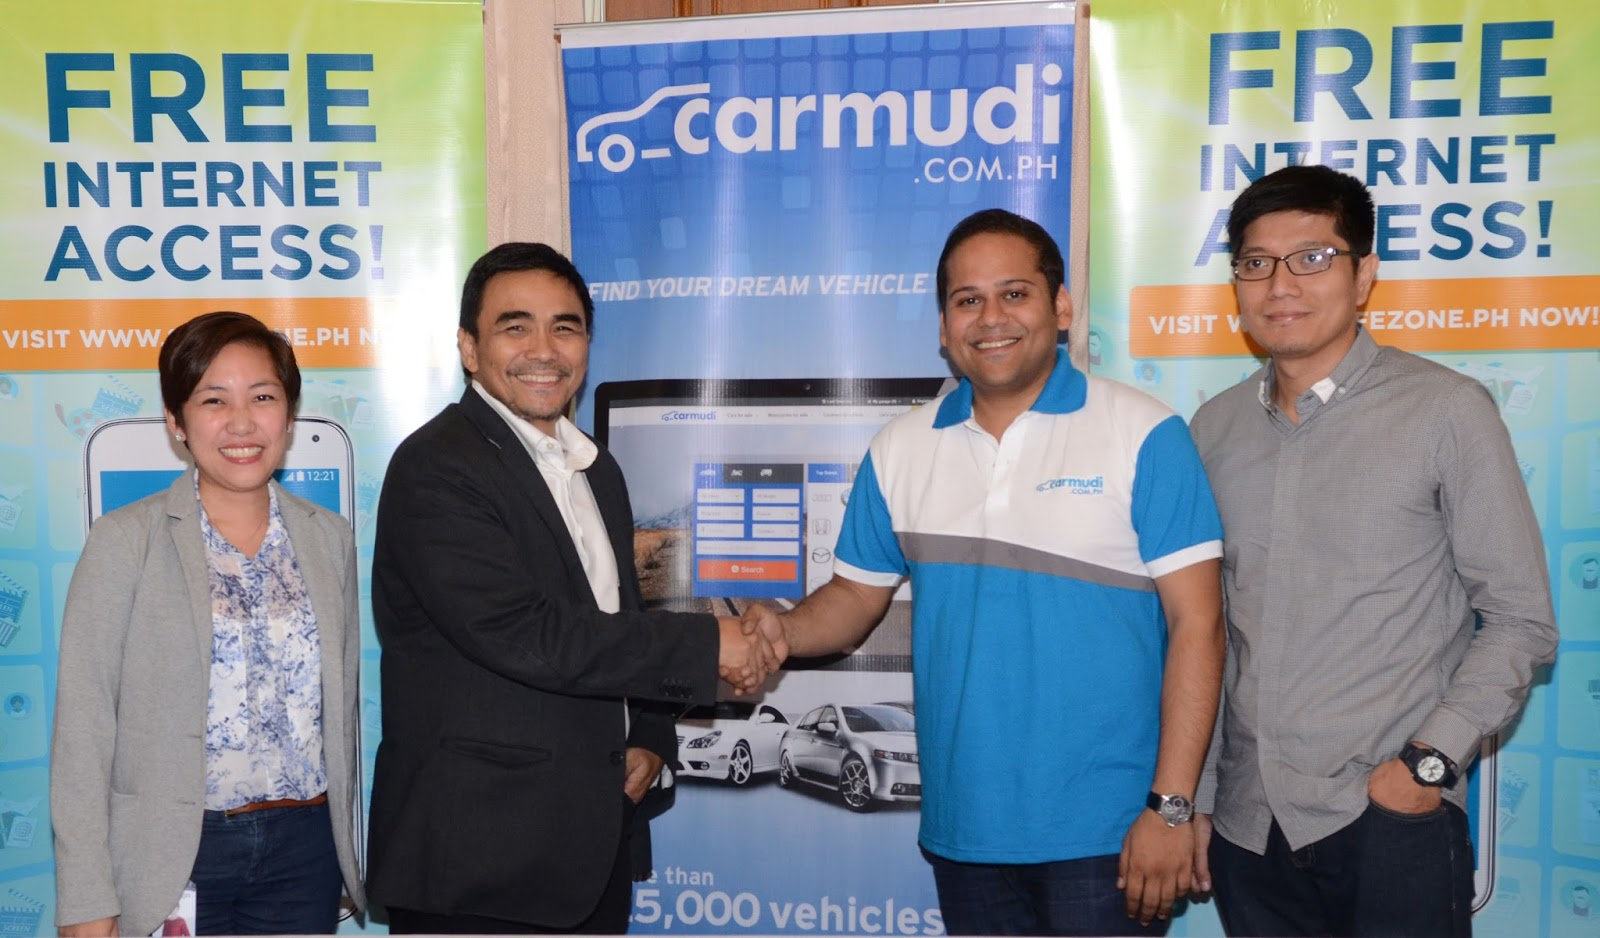 Carmudi partners with SafeZone